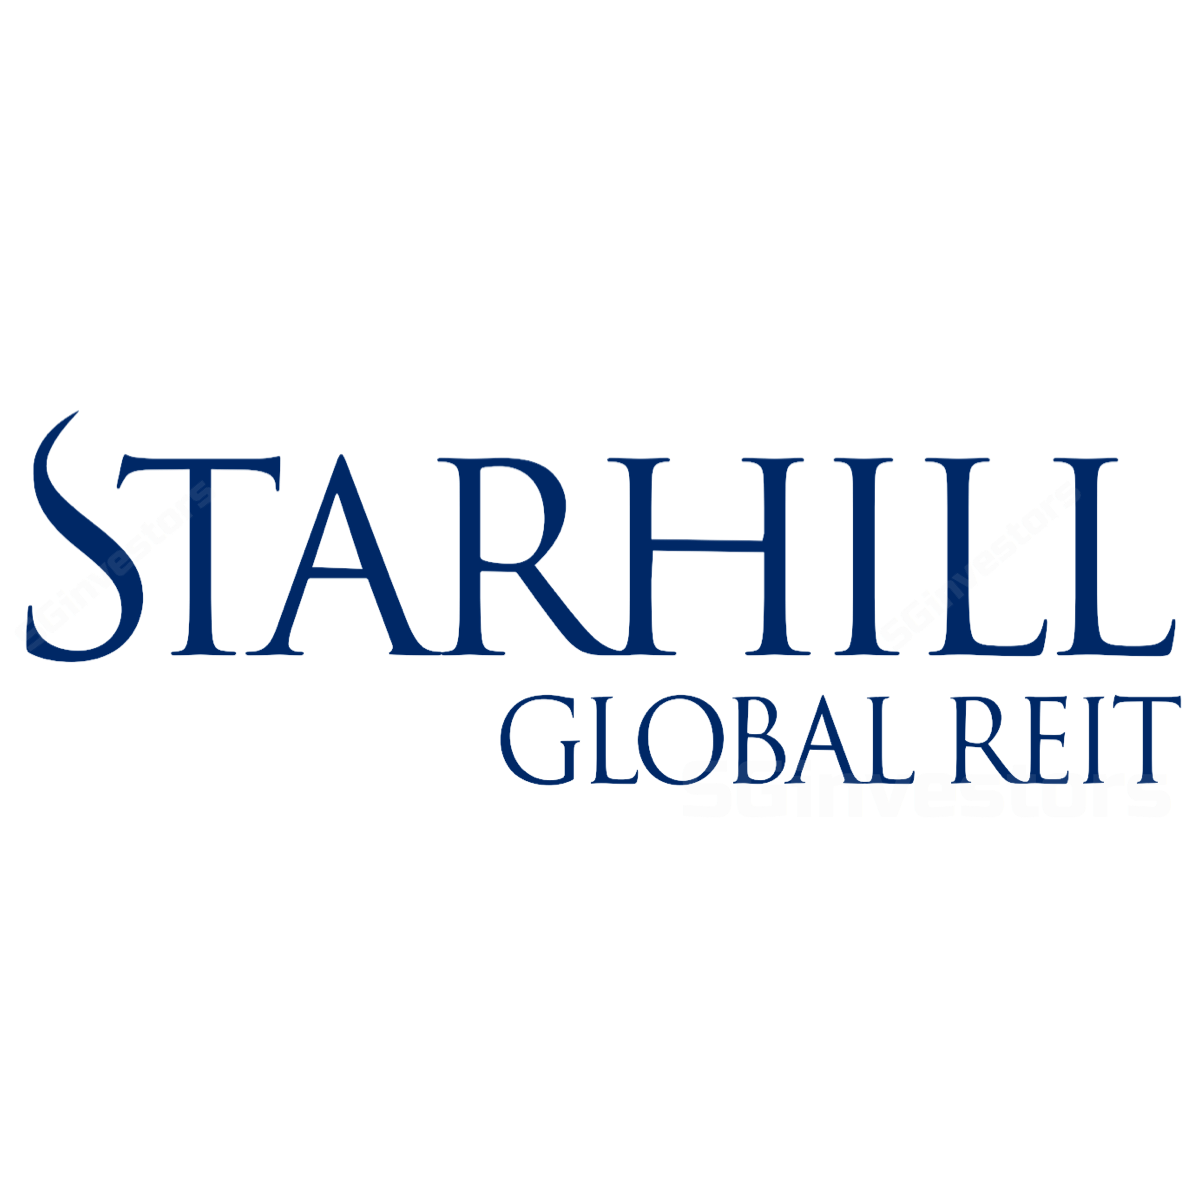 Starhill Global REIT - RHB Invest 2017-02-02: Revamping For a Fresh Look